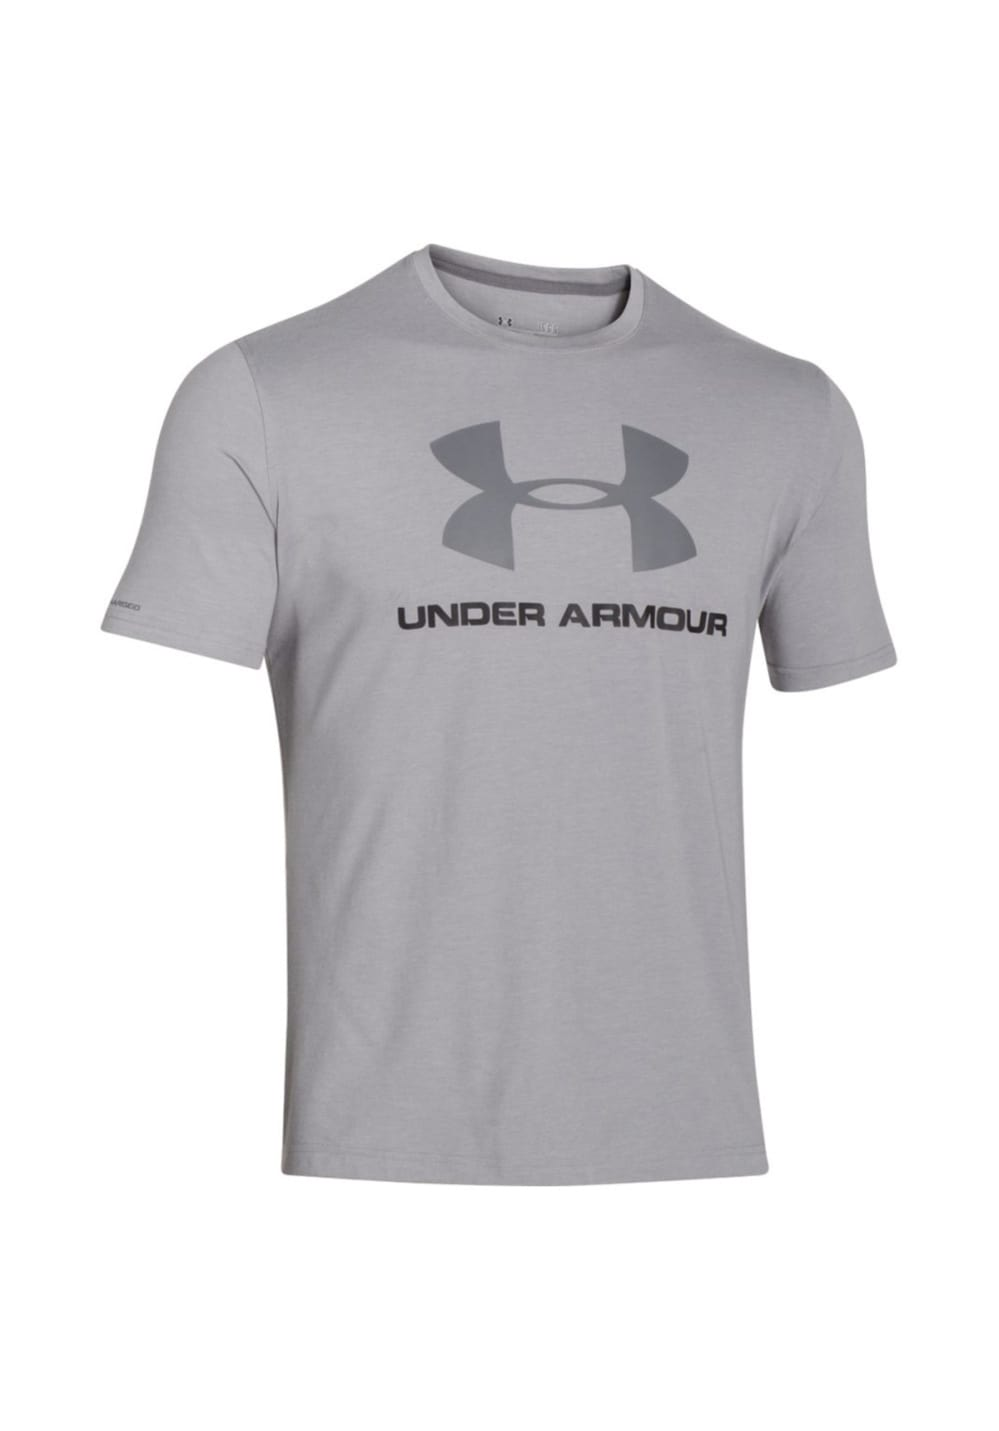 Under Armour Charged Cotton Sportstyle Logo - Fitnessshirts für Herren - Grau